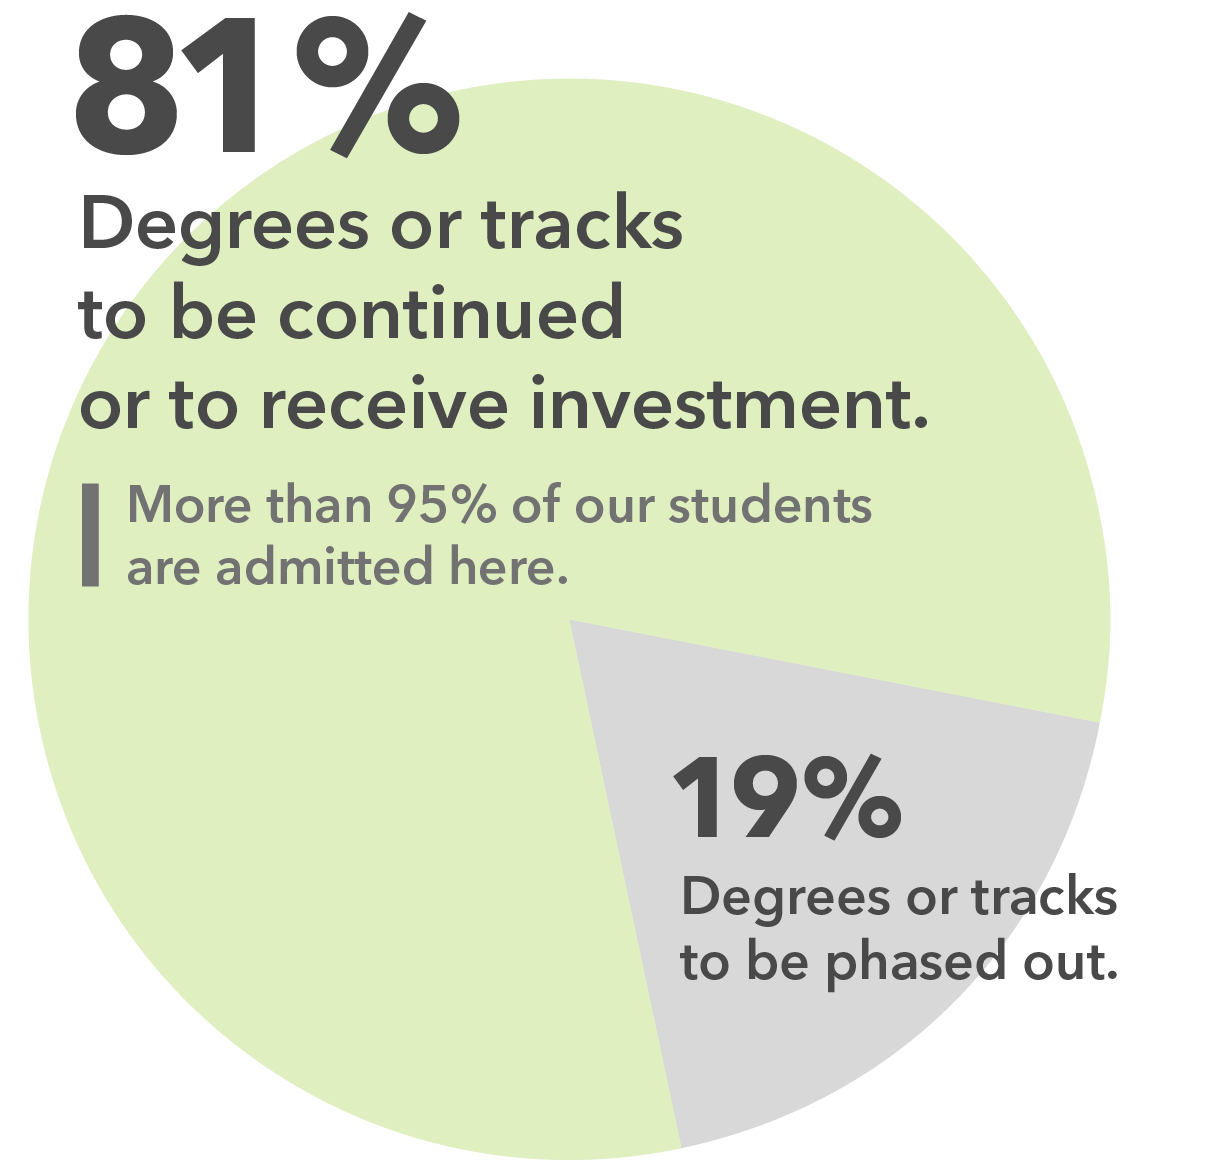 Pie chart showing that 81 percent of UA's degrees or tracks will continue or receive increased investment.